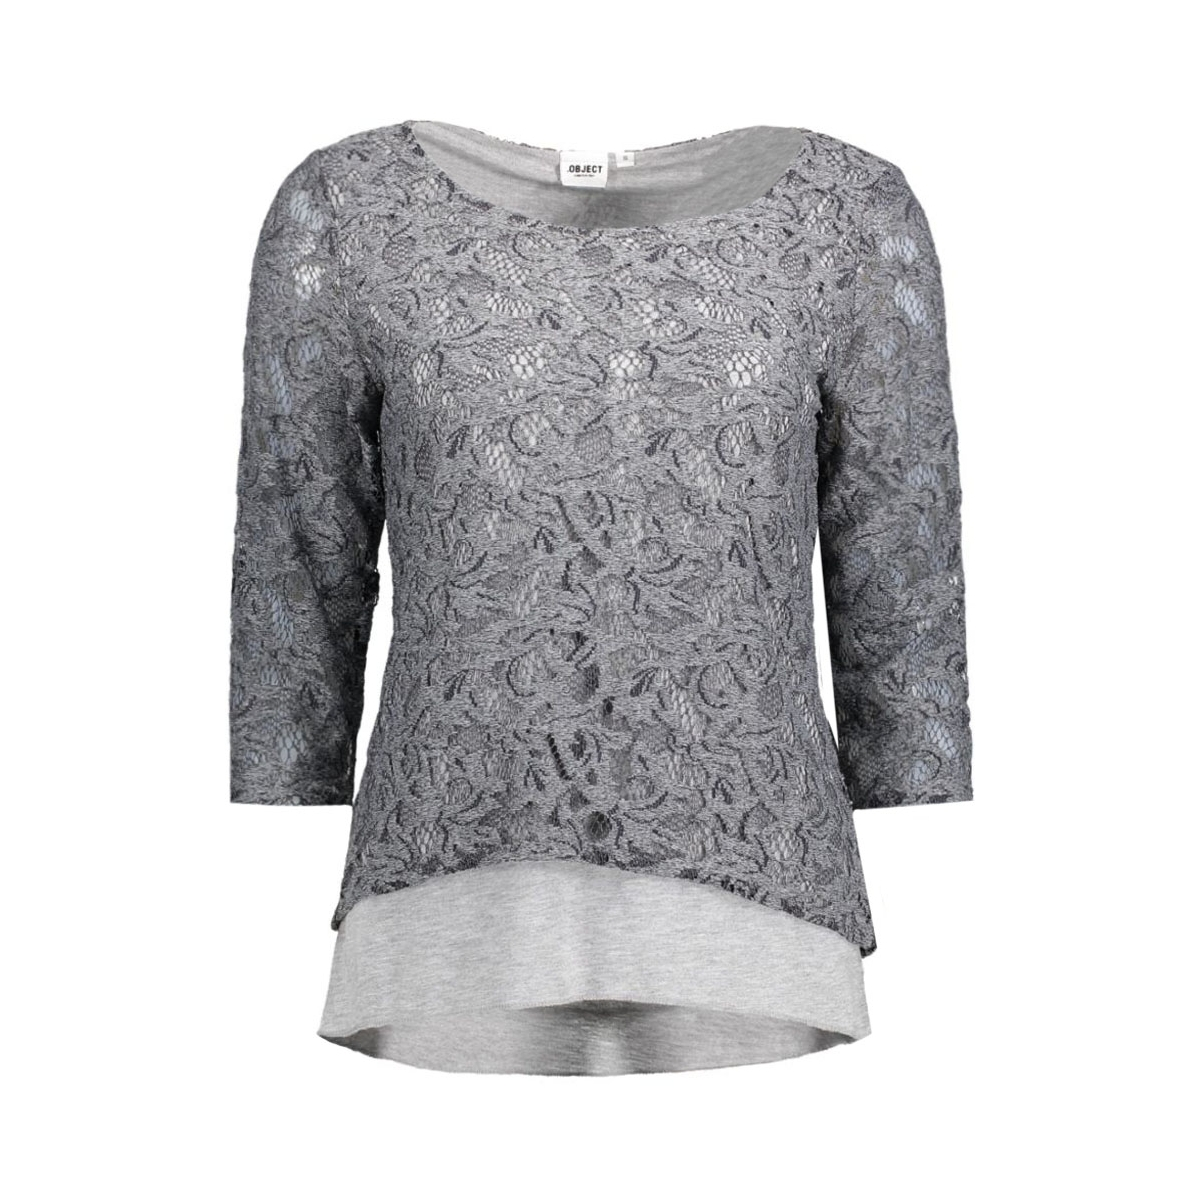 objmary 3/4 top 23023761 object t-shirt medium grey melange